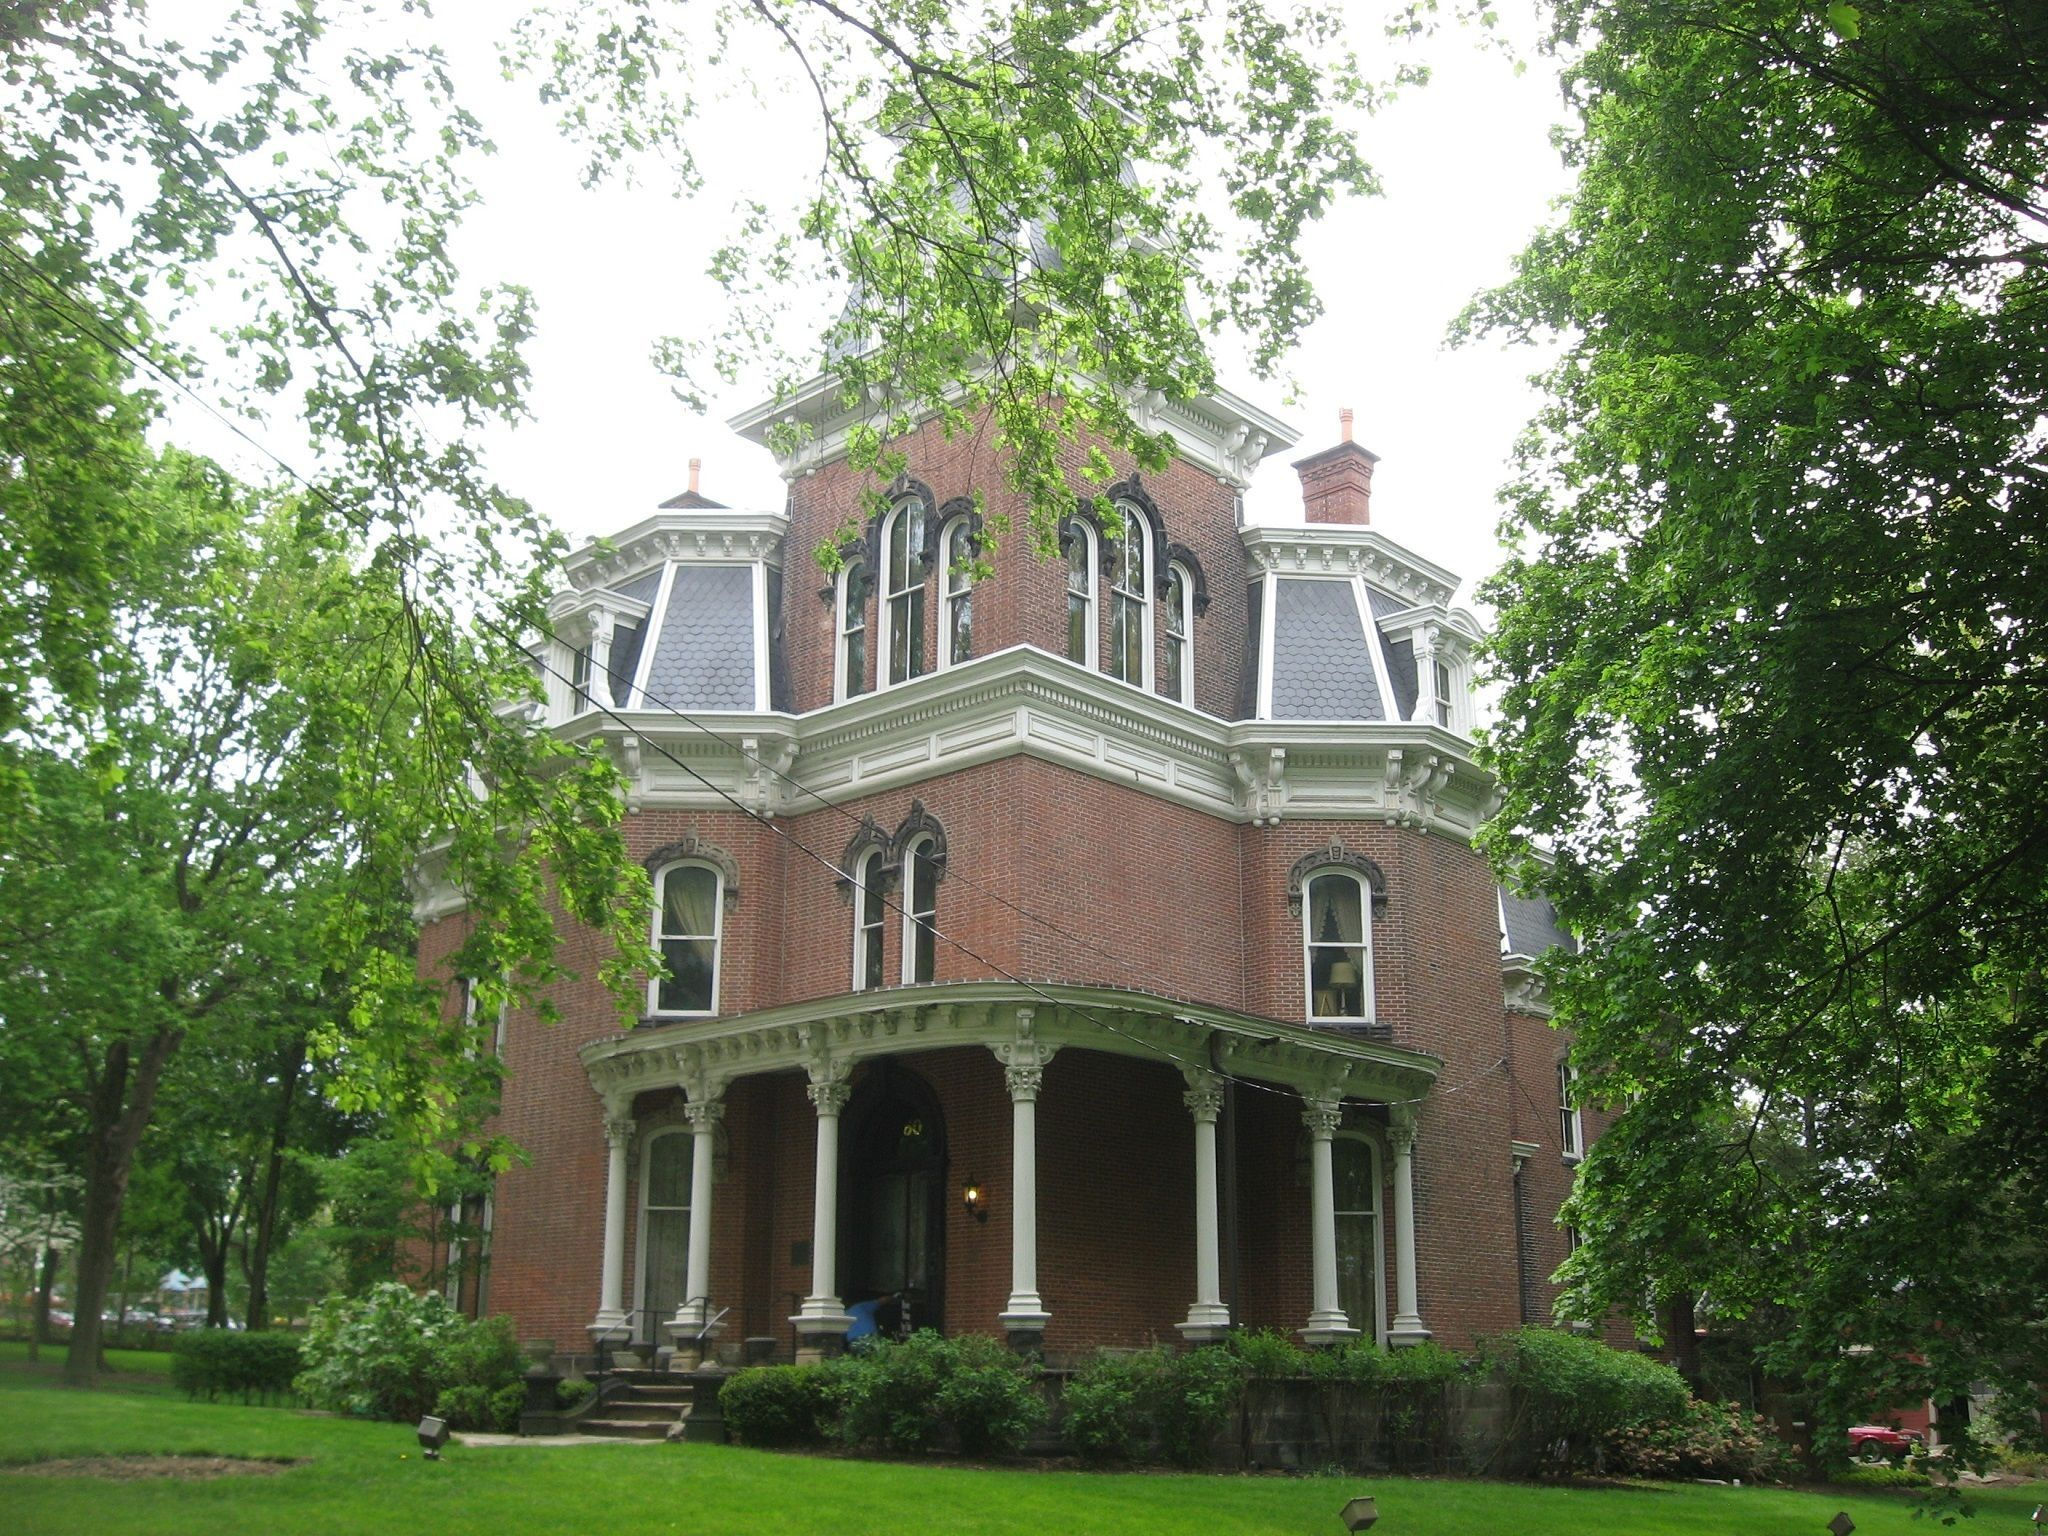 Sheraton Suites Akron Cuyahoga Falls - Hower Mansion Exterior